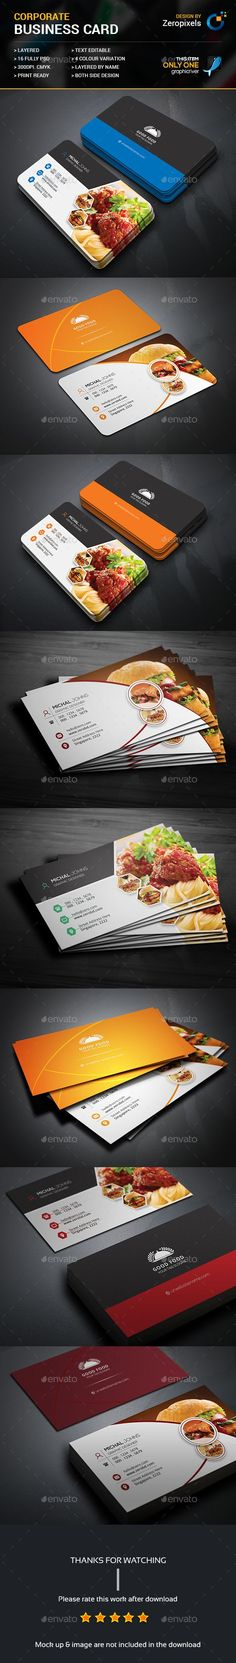 Restaurant Business Card Templates PSD Bundle                                                                                                                                                                                 More